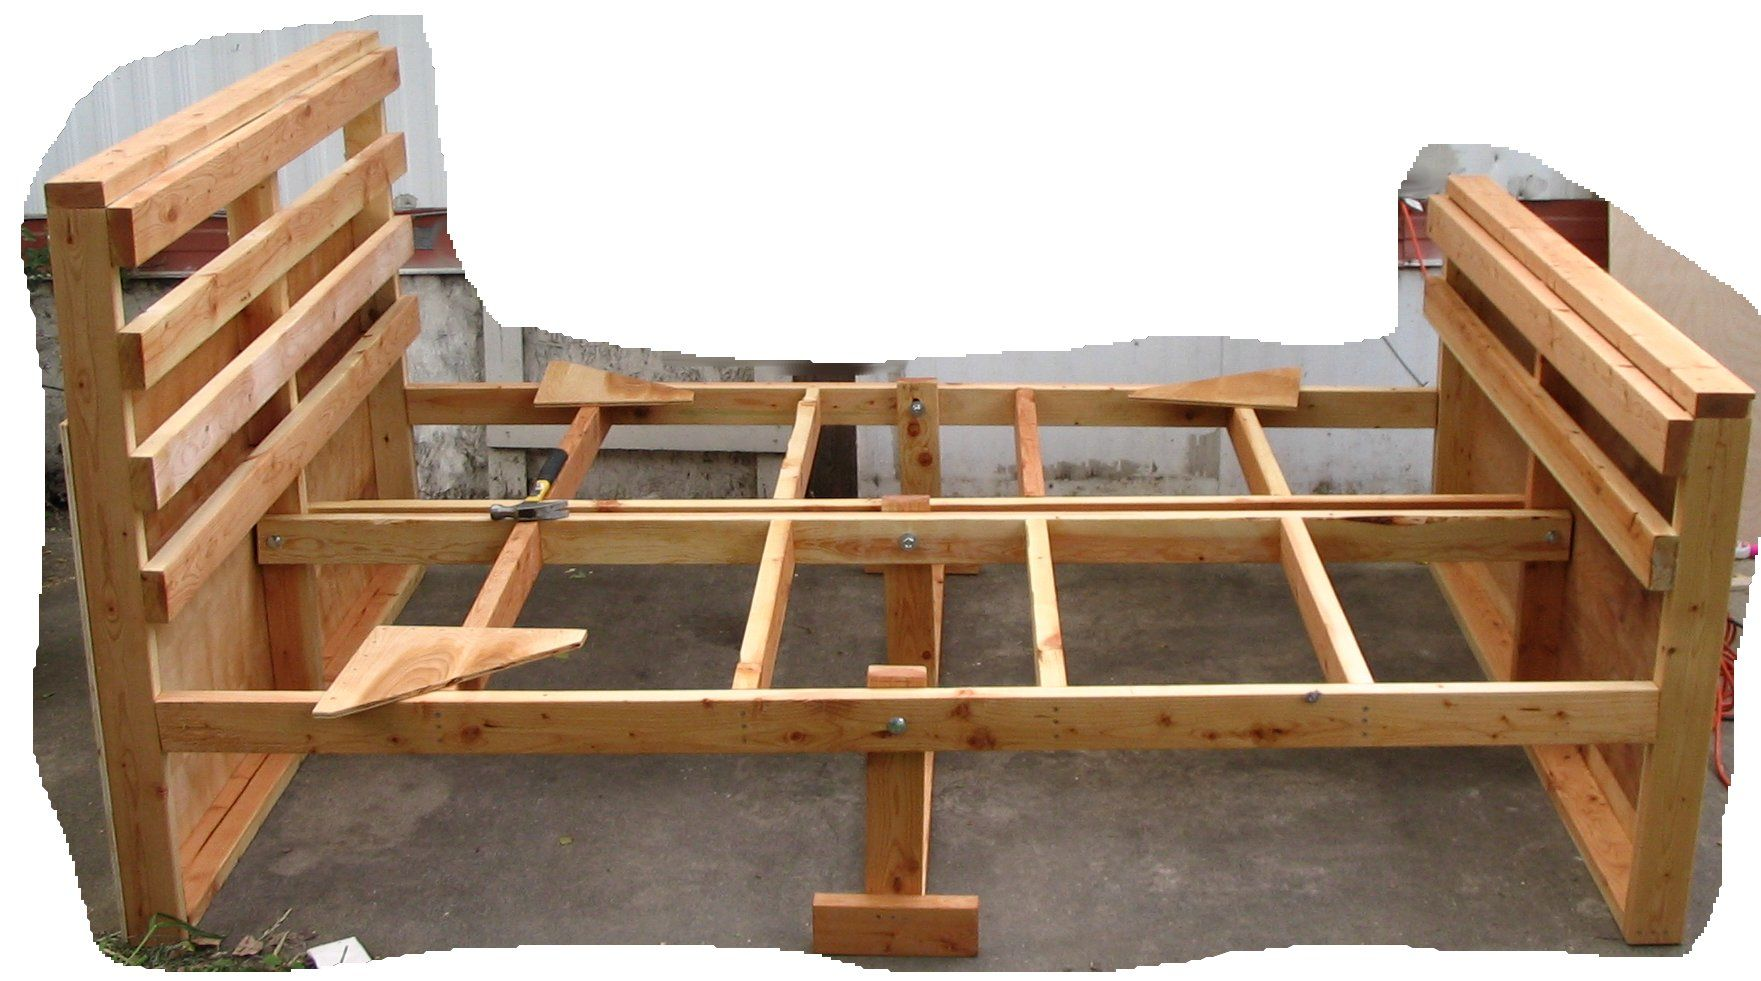 Woodworking plans bed frame plans free free download bed for Build your own canopy bed